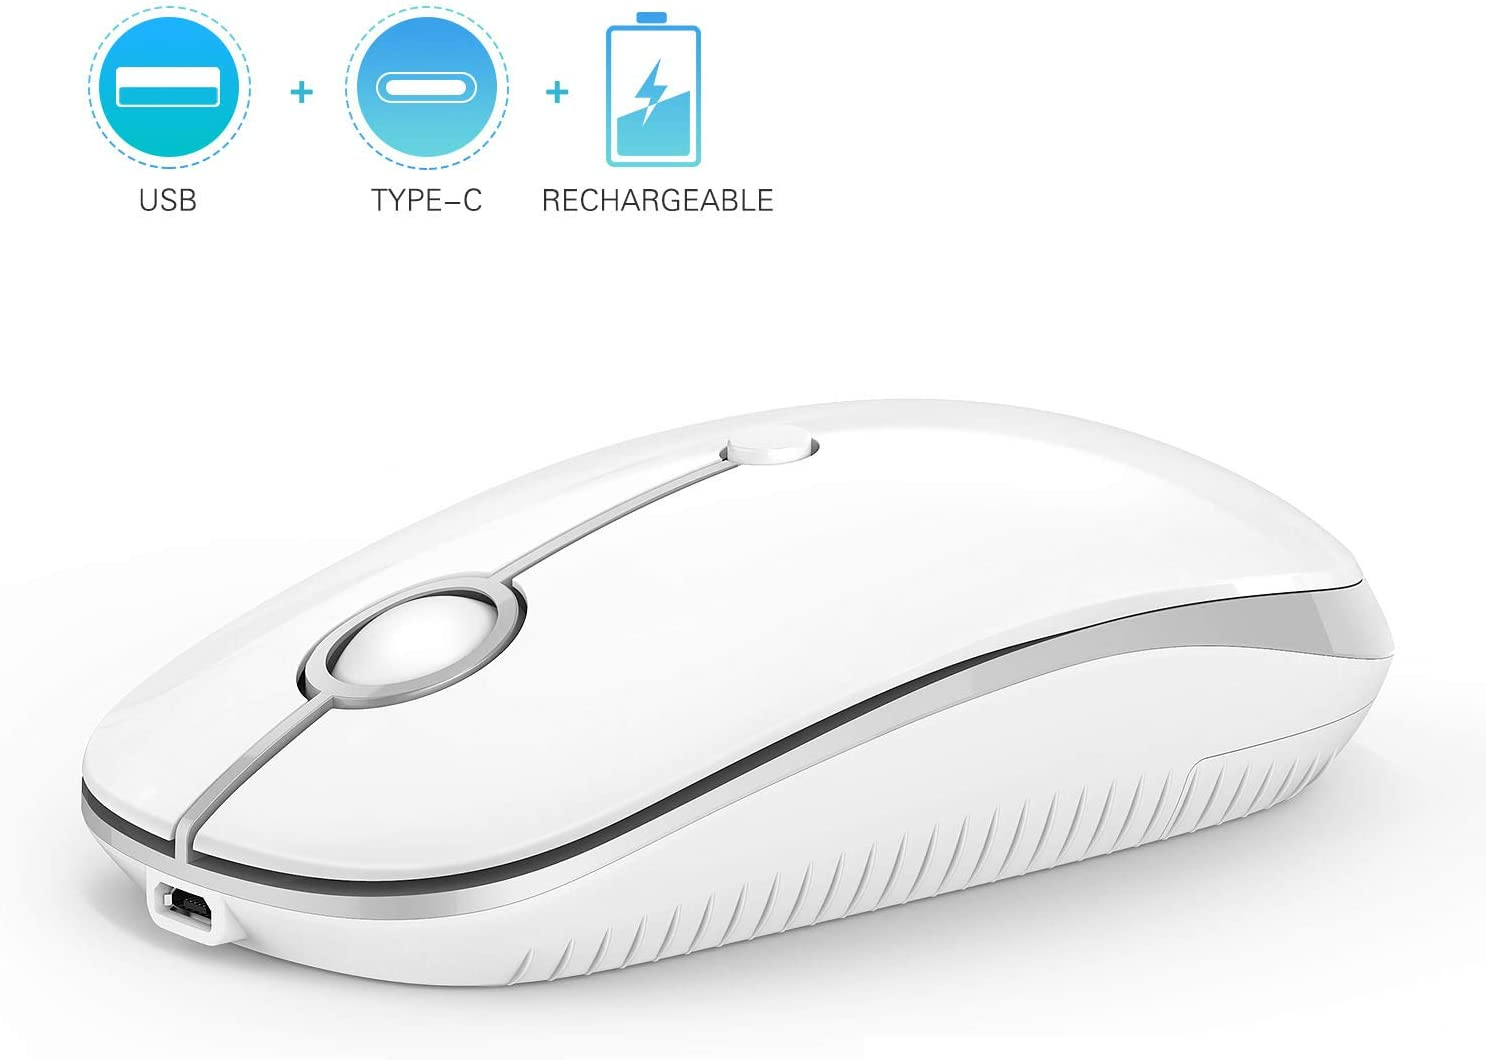 Type C Wireless Mouse, Jelly Comb Dual Mode 2.4Ghz Rechargeable Slim Wireless Mouse with Nano USB and Type C Receiver for PC Laptop, MacBook pro, MacBook air, iMac-MS05 (White and Silver)